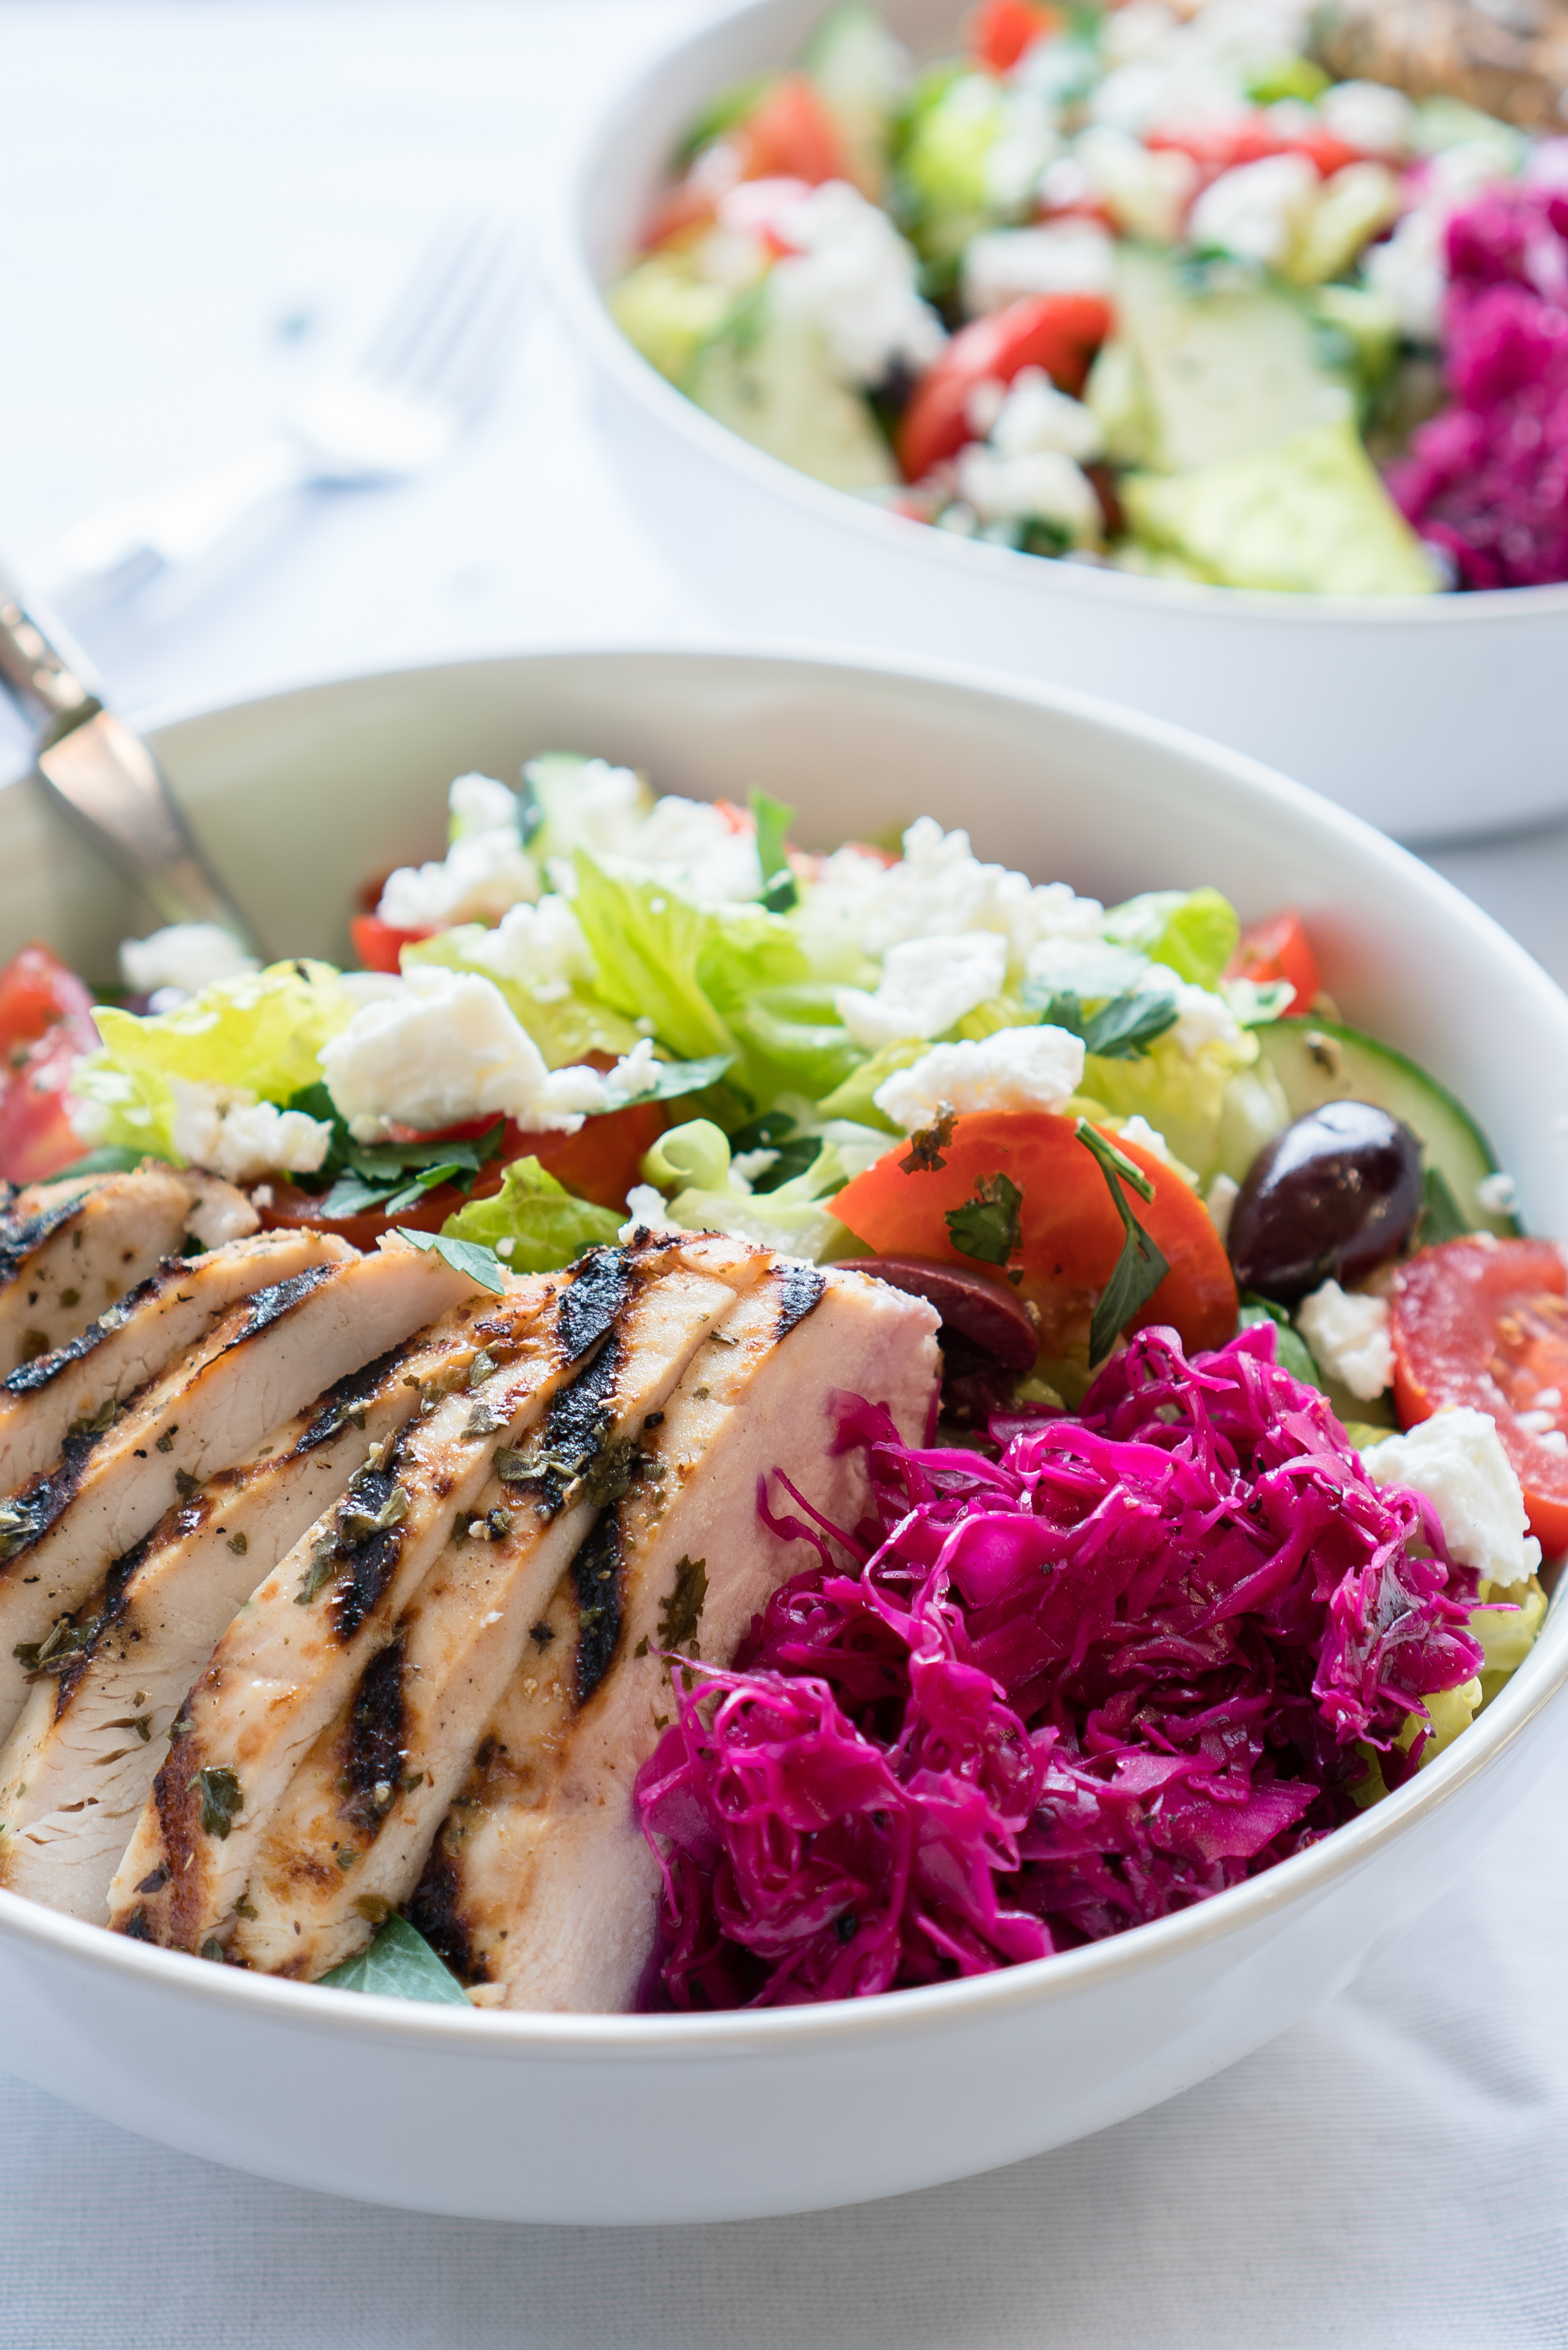 Mediterranean Salad Bowls – Simple, healthy recipe for Mediterranean Salad Bowls! Crisp romaine topped with cucumber, tomatoes, Kalamata olives, feta cheese, and homemade pickled red cabbage with a lemony Greek Dressing. Gluten-free & low carb! ♥ | freeyourfork.com